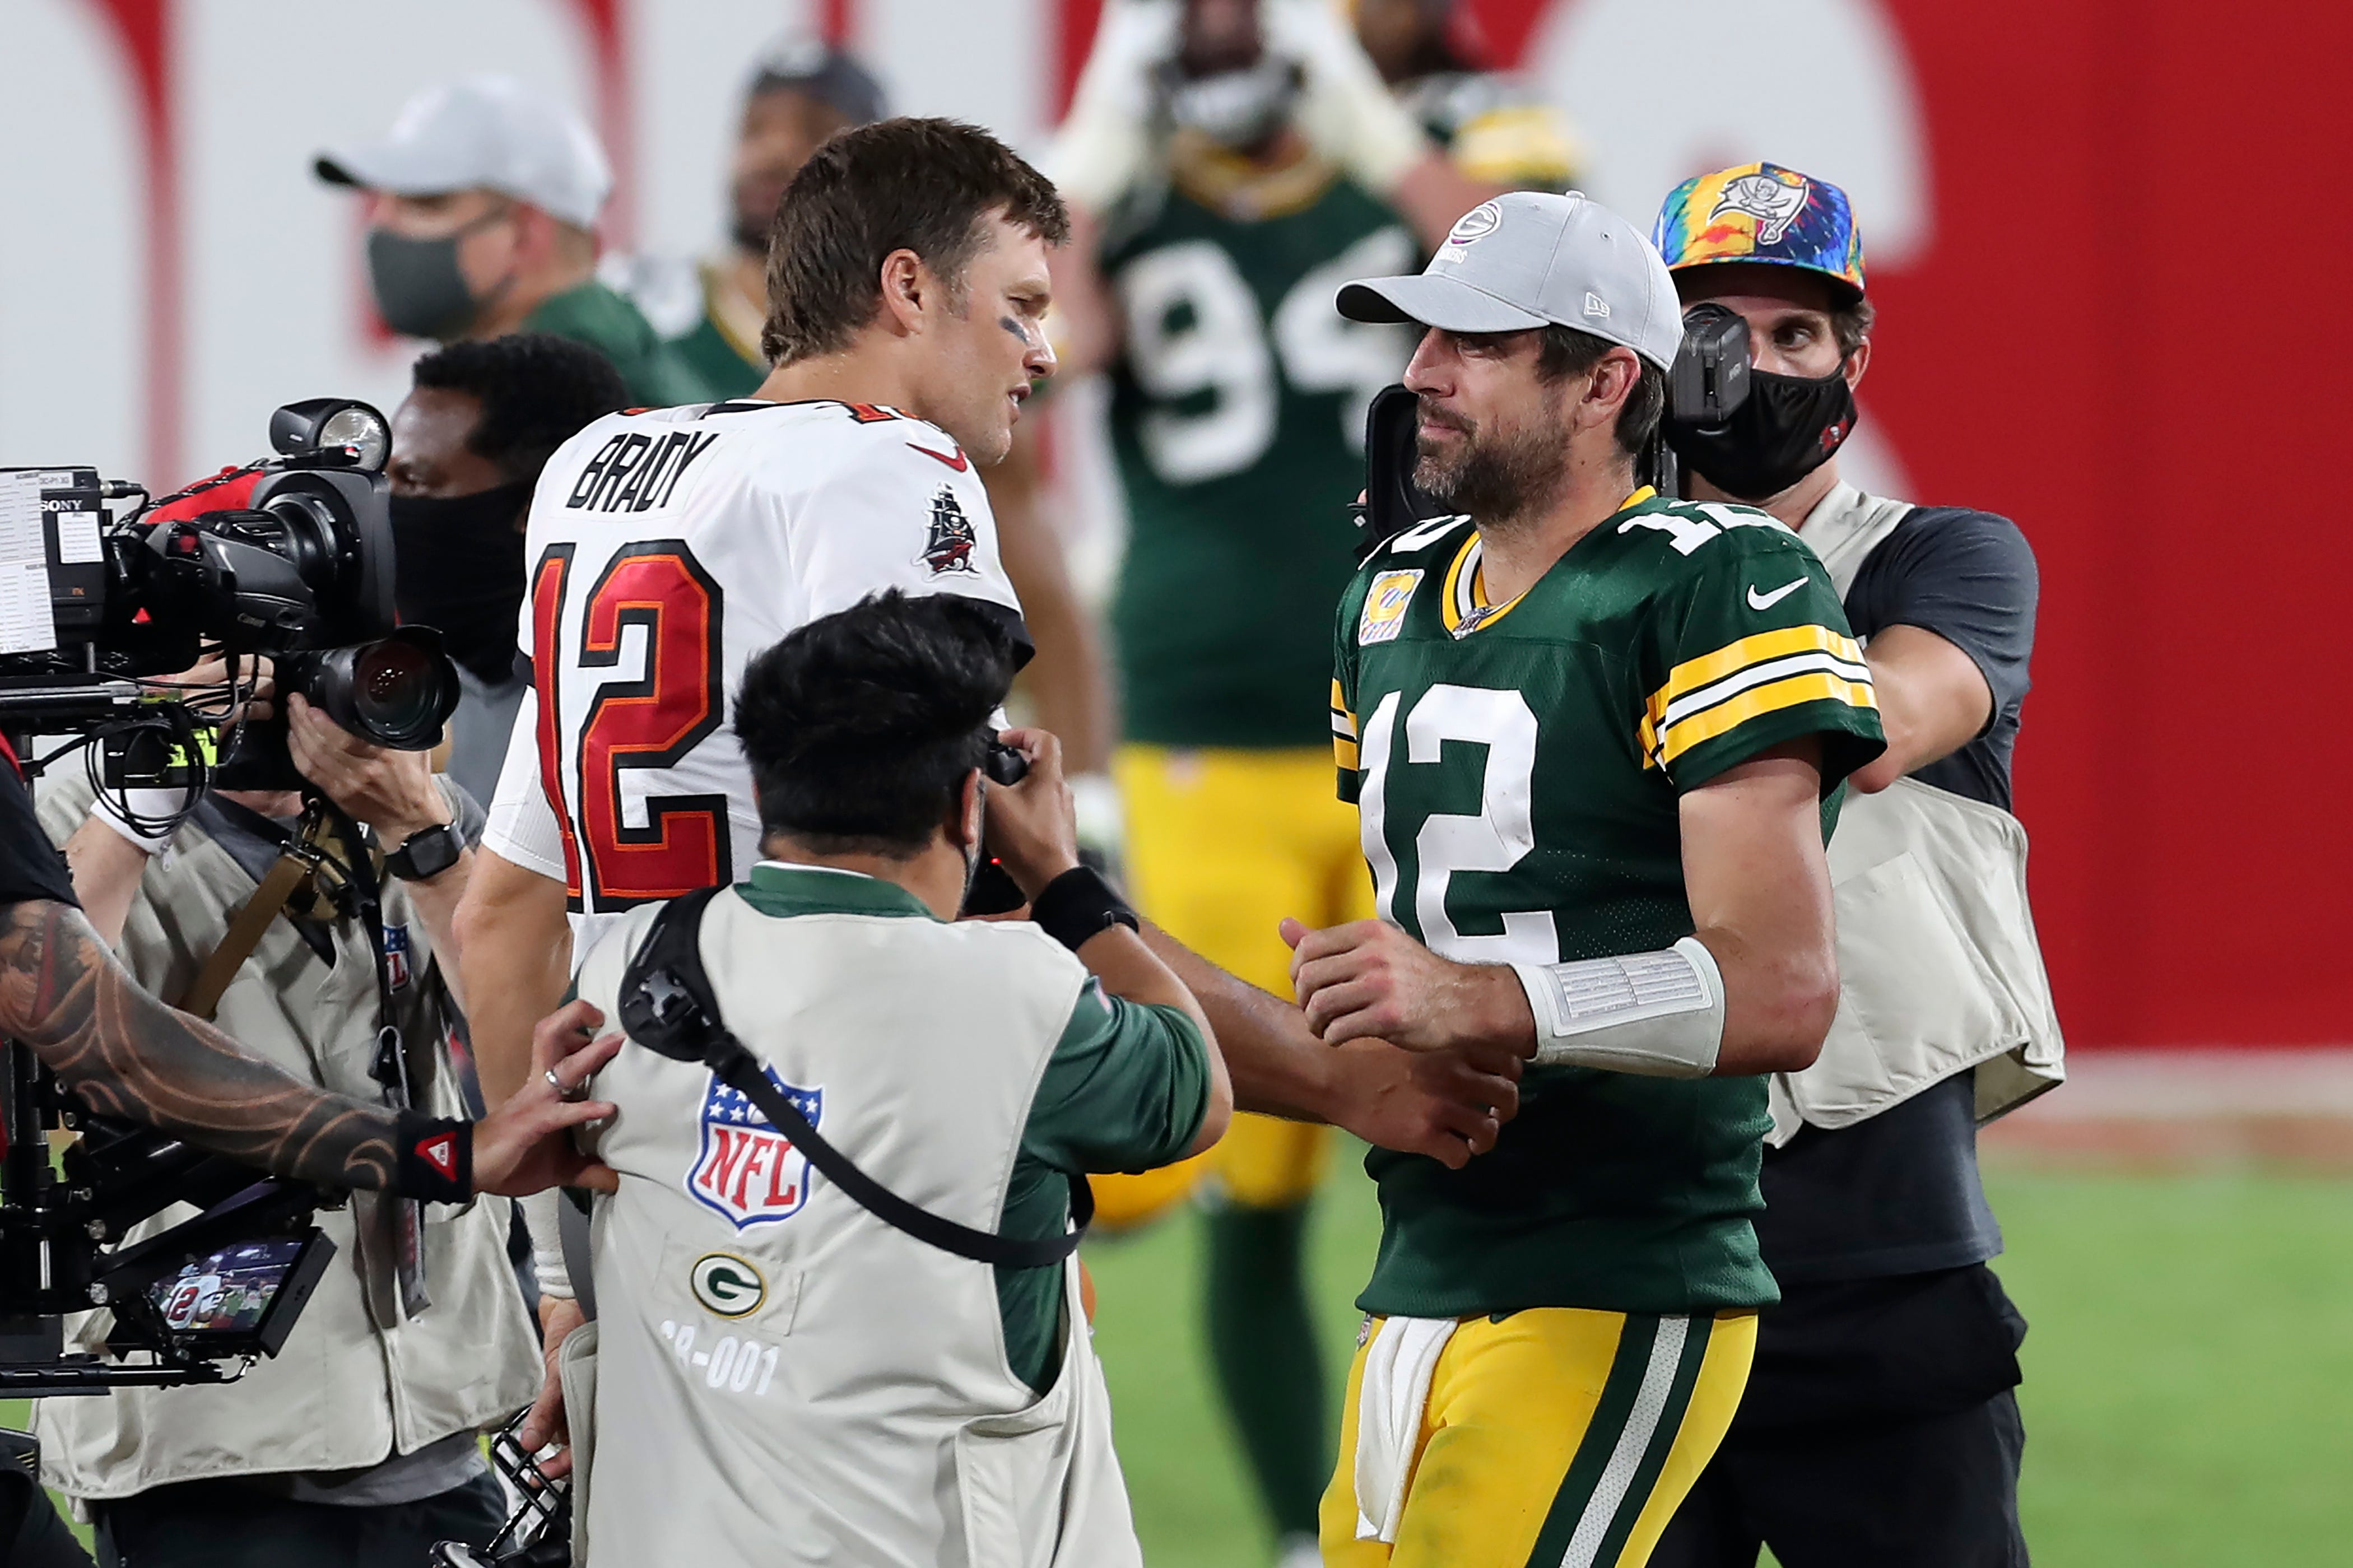 NFL championship Sunday: Will Tom Brady, Aaron Rodgers, Patrick Mahomes or Josh Allen shine brightest?